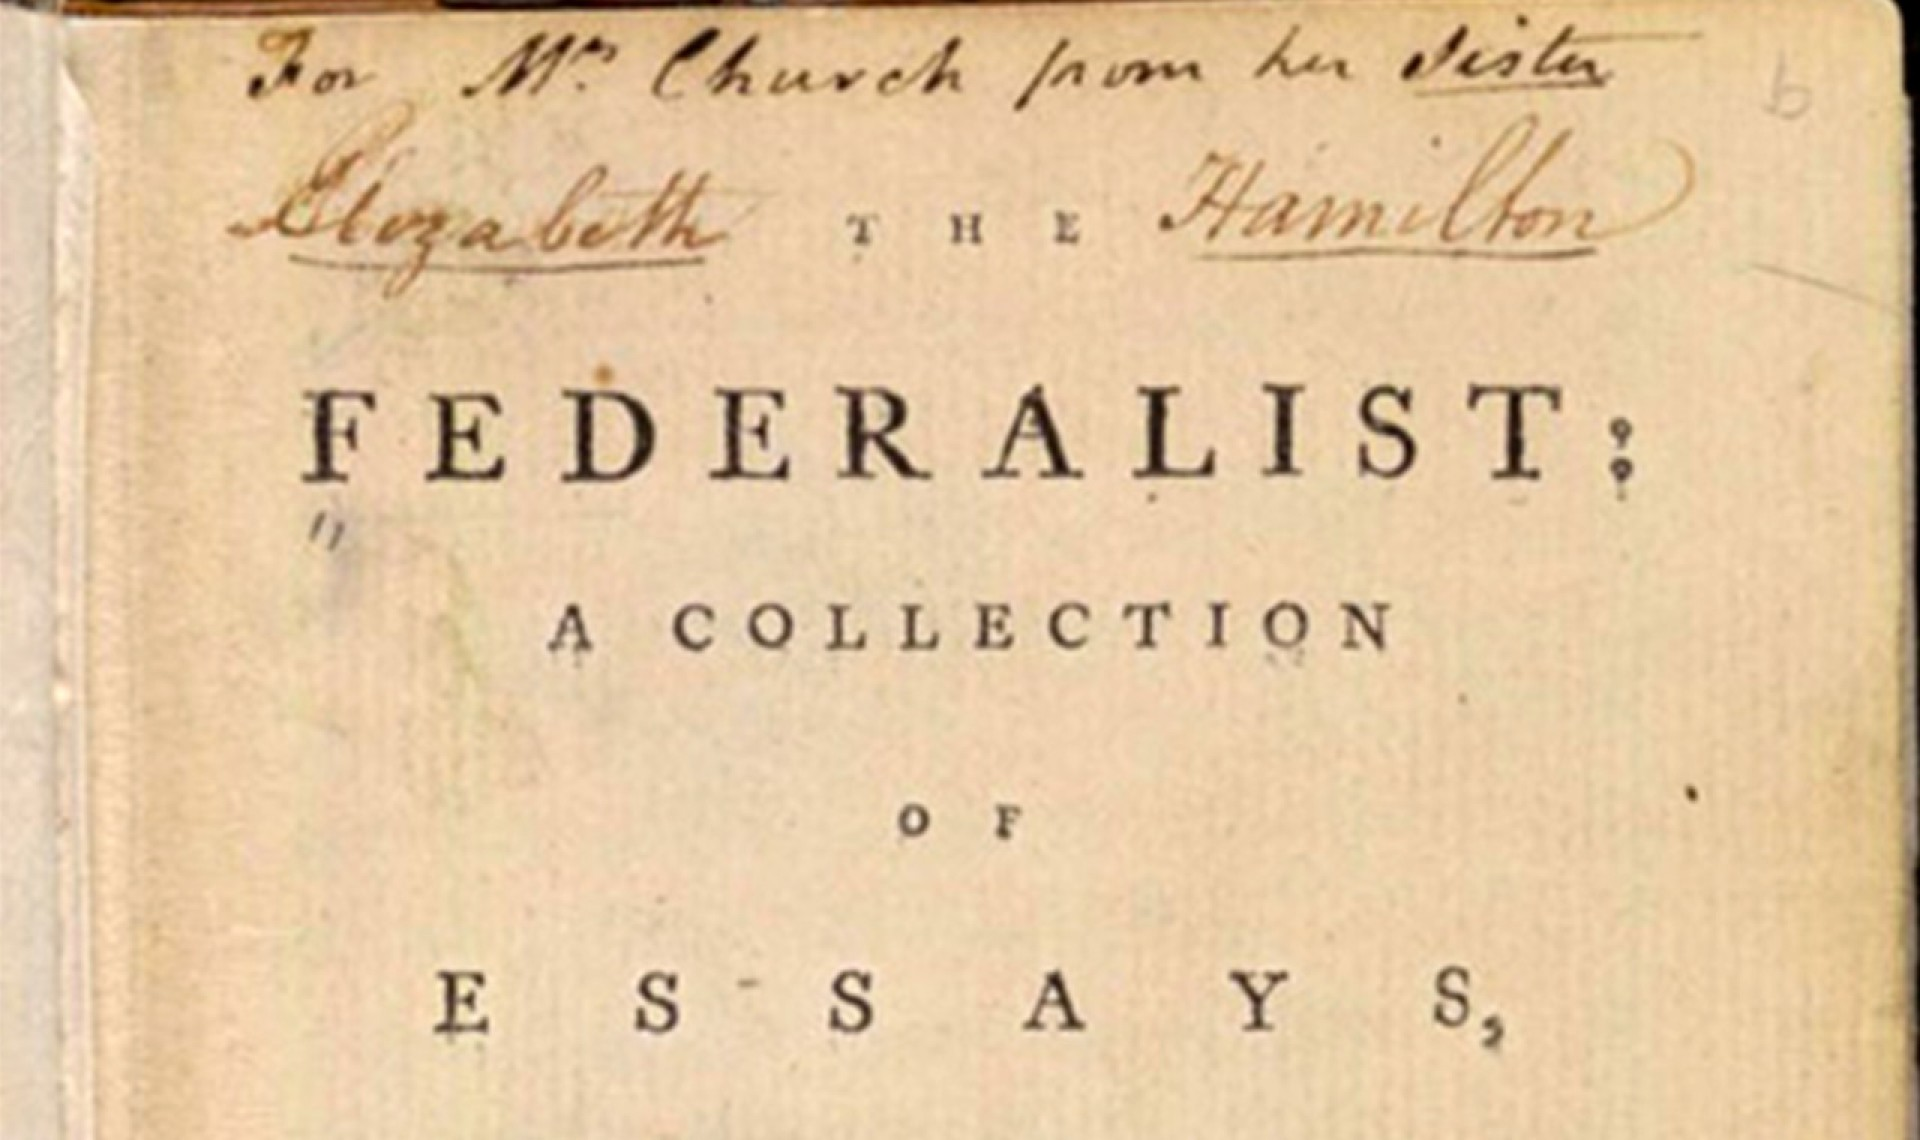 023 Federalist Papers Alexander Hamilton Essays Essay Frightening 51 78 Did Wrote 1920